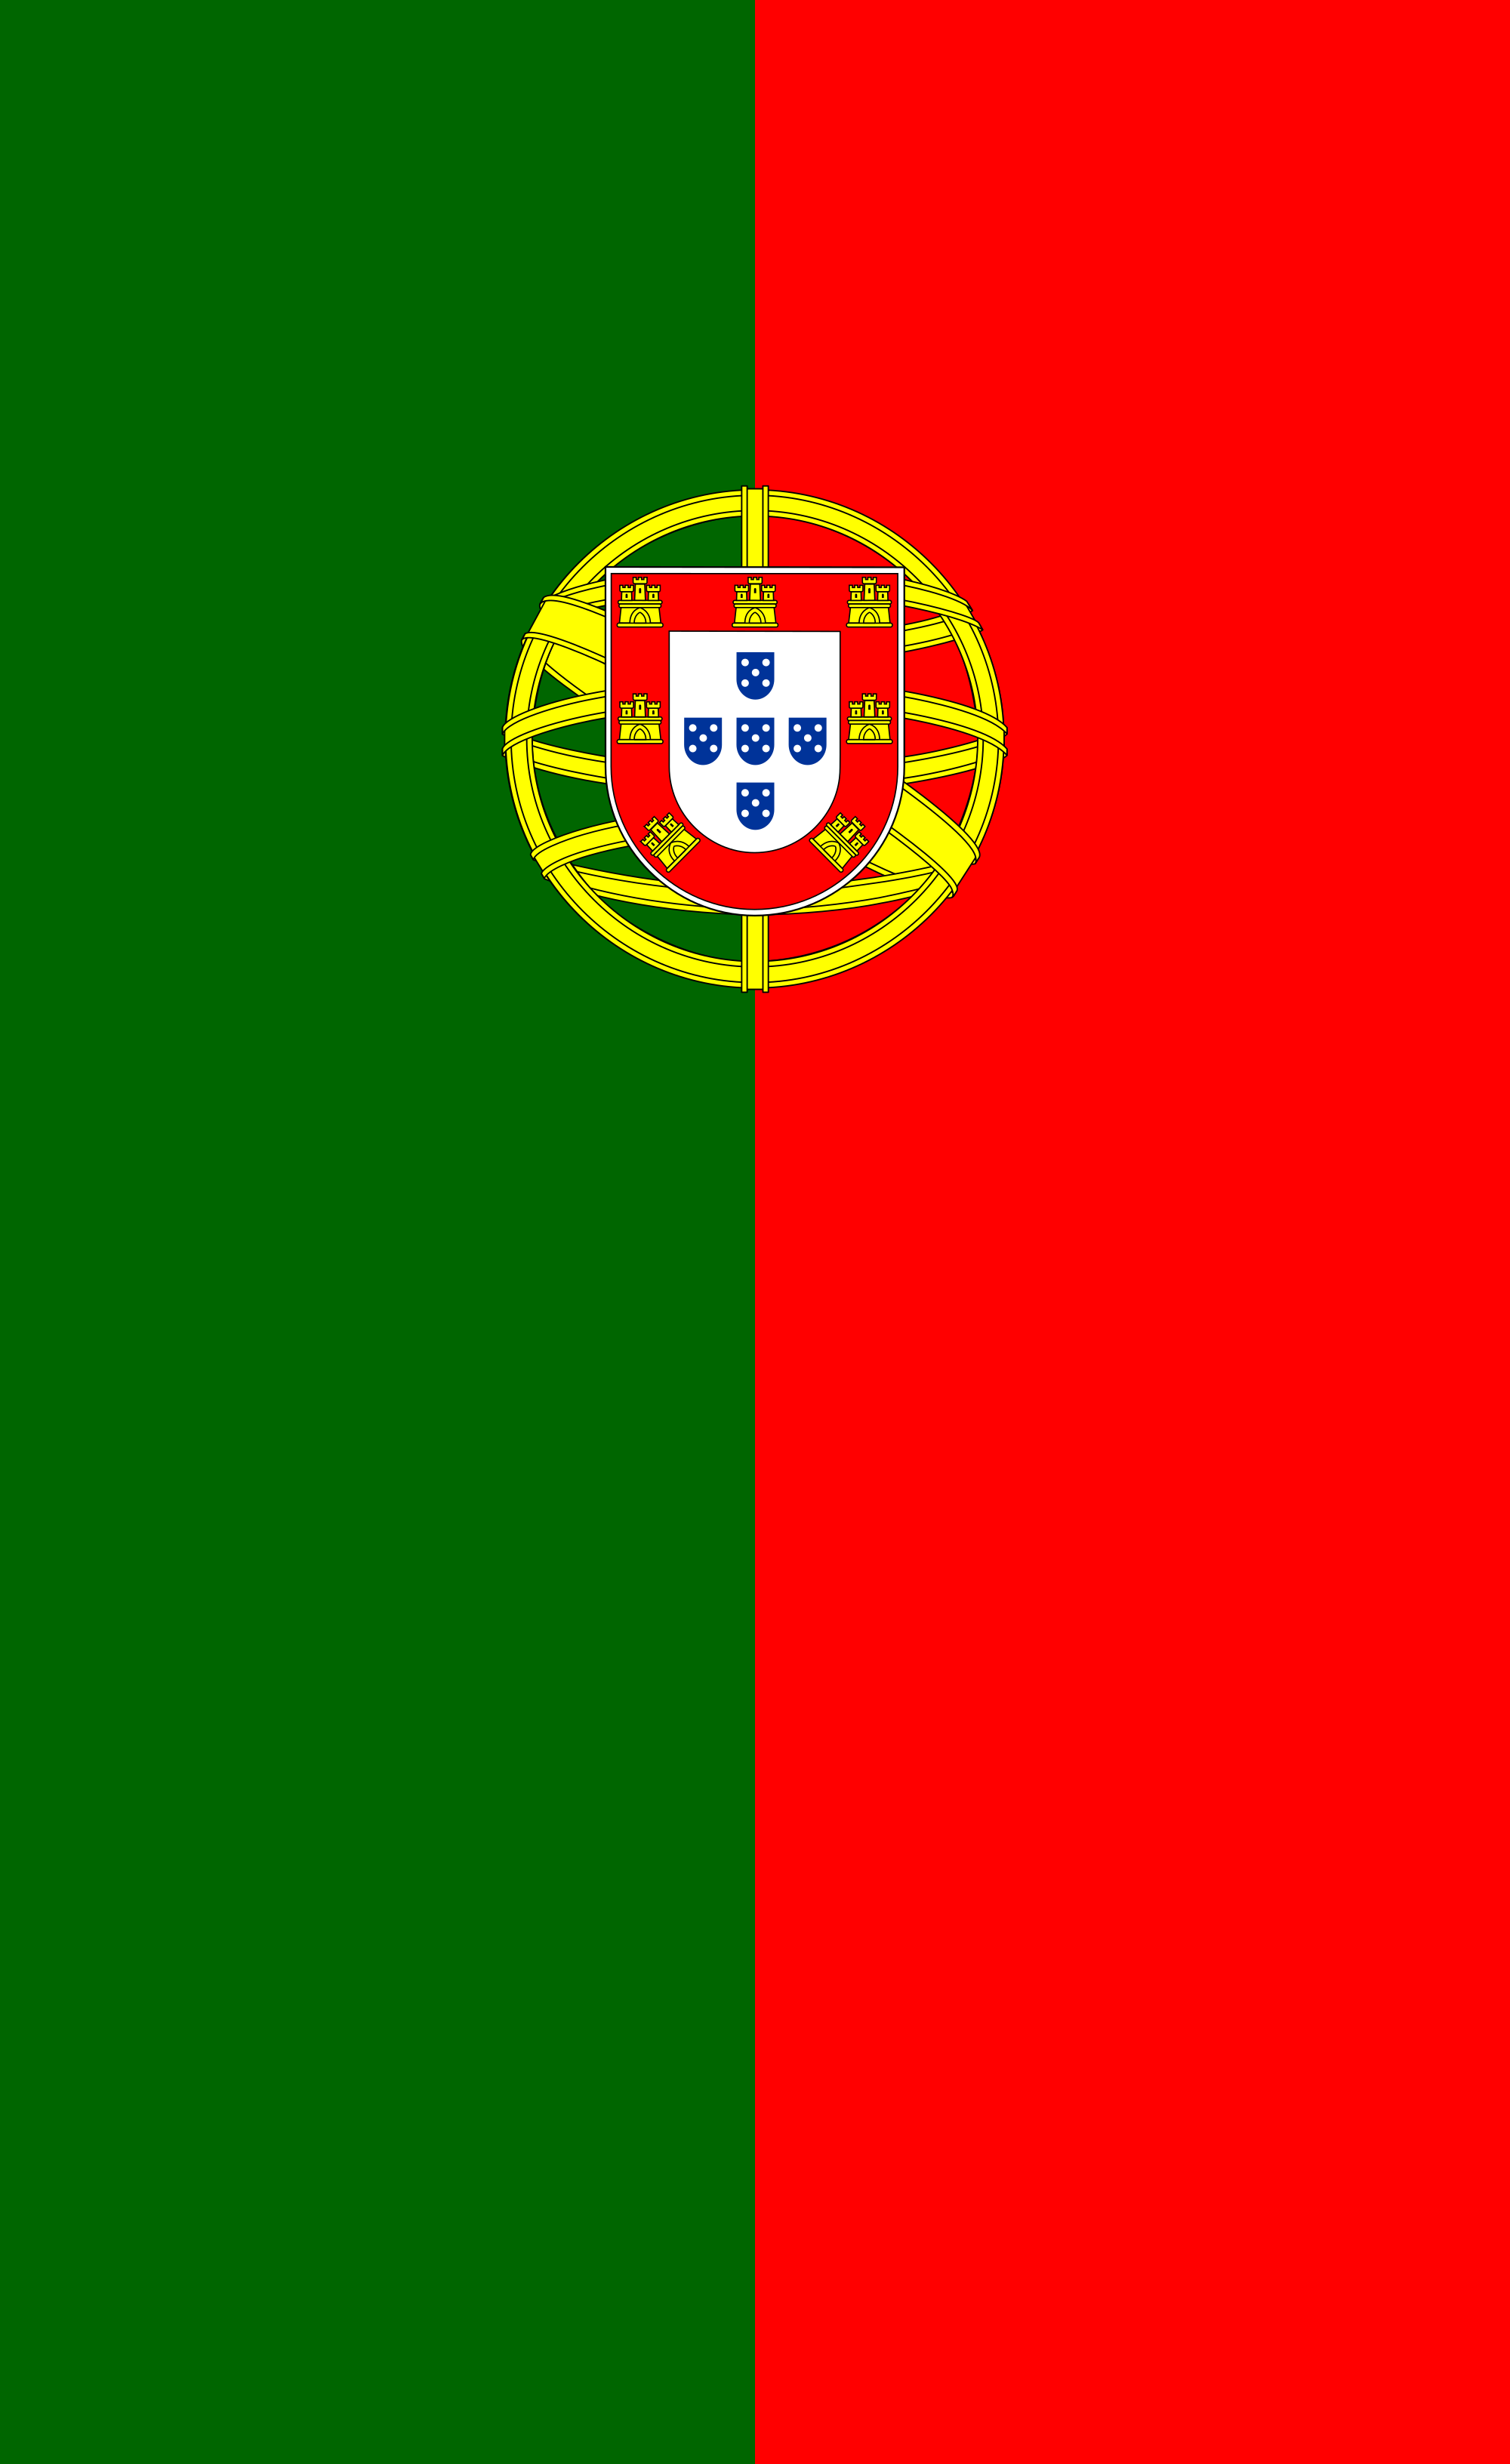 File:Vertical flag of Portugal.png - Wikimedia Commons